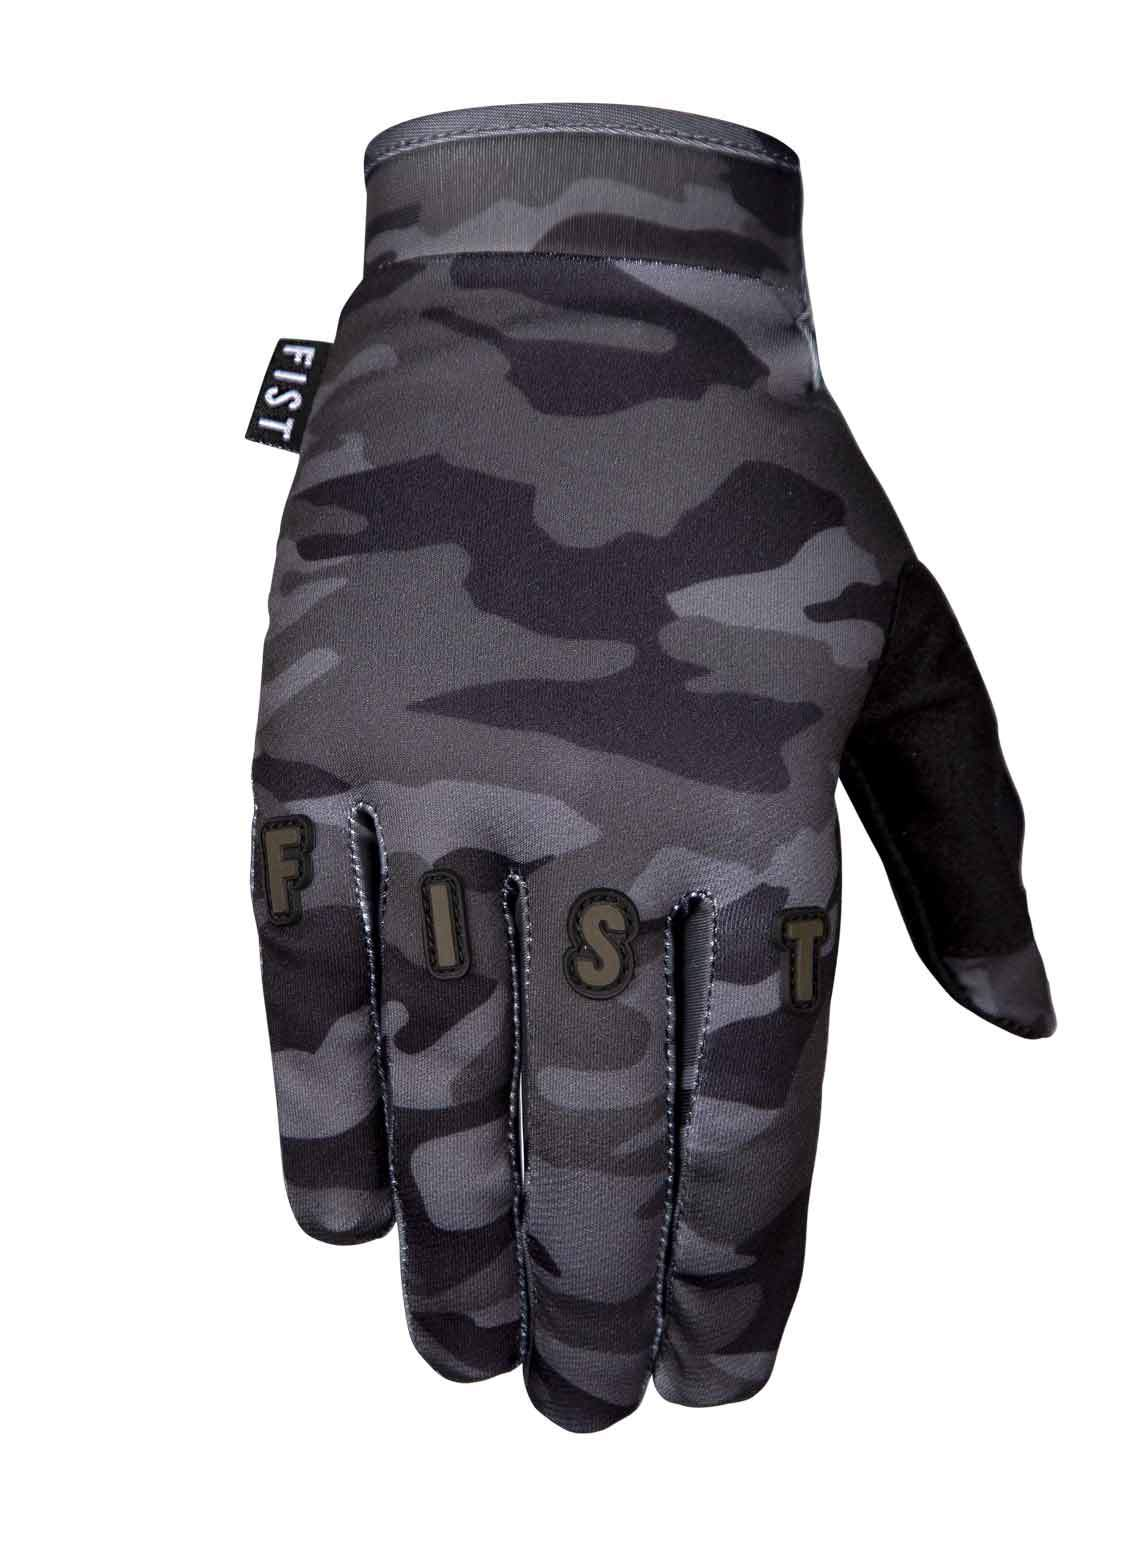 Fist Covert Camo Gloves - Size 7 / Adult XS